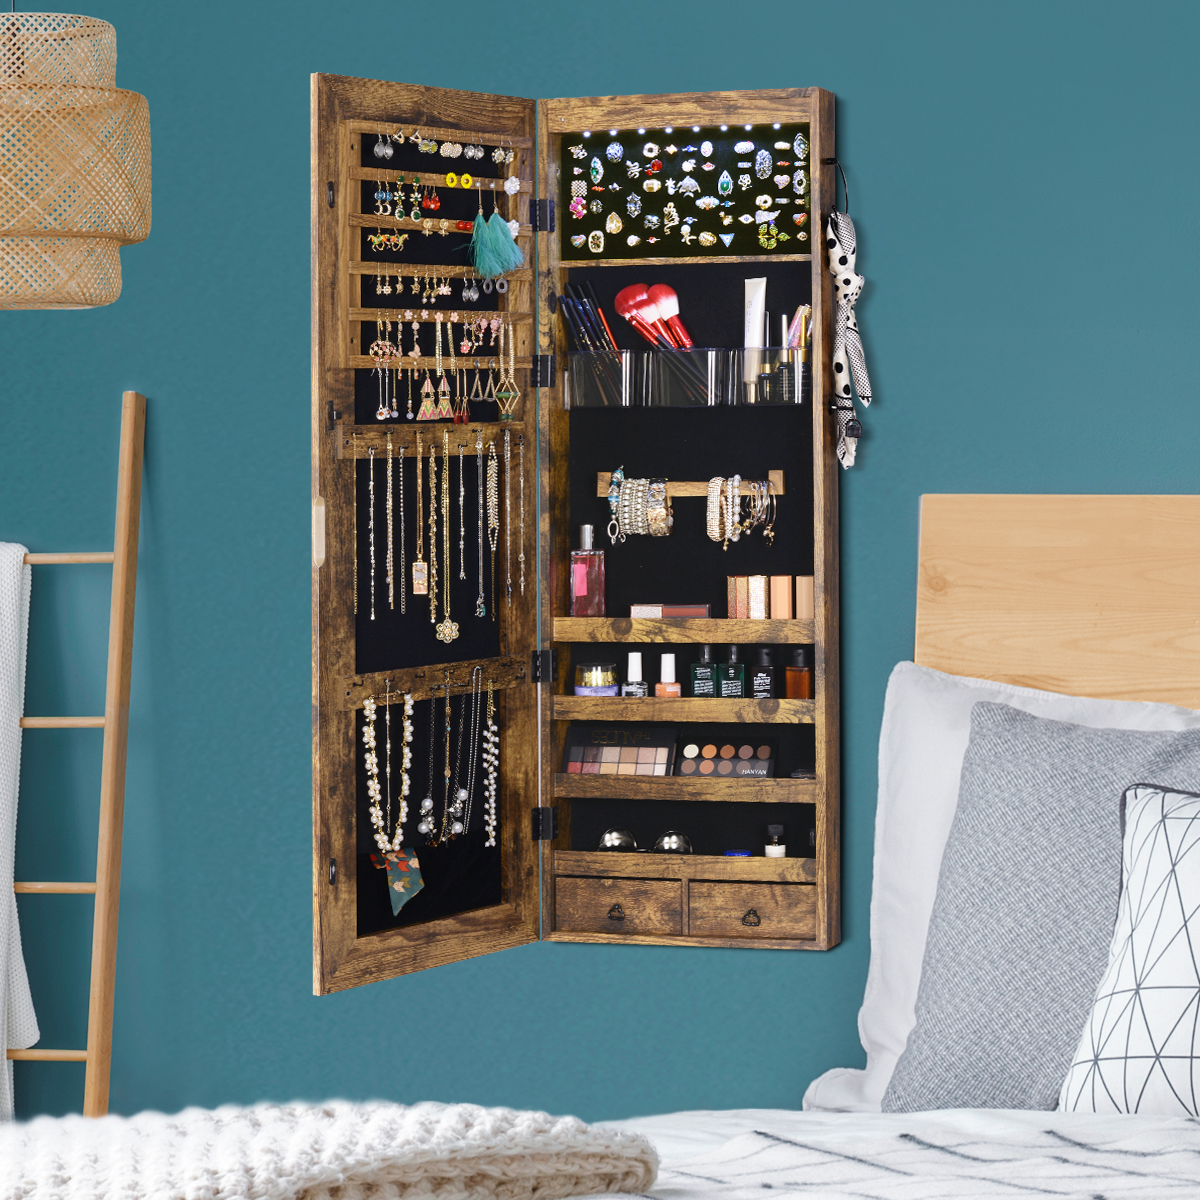 Multifunctional LED Jewelry Mirror Cabinet Wall Door Mounted Jewelry Cabinet Lockable Armoire Organizer Dresser Mirror with LED